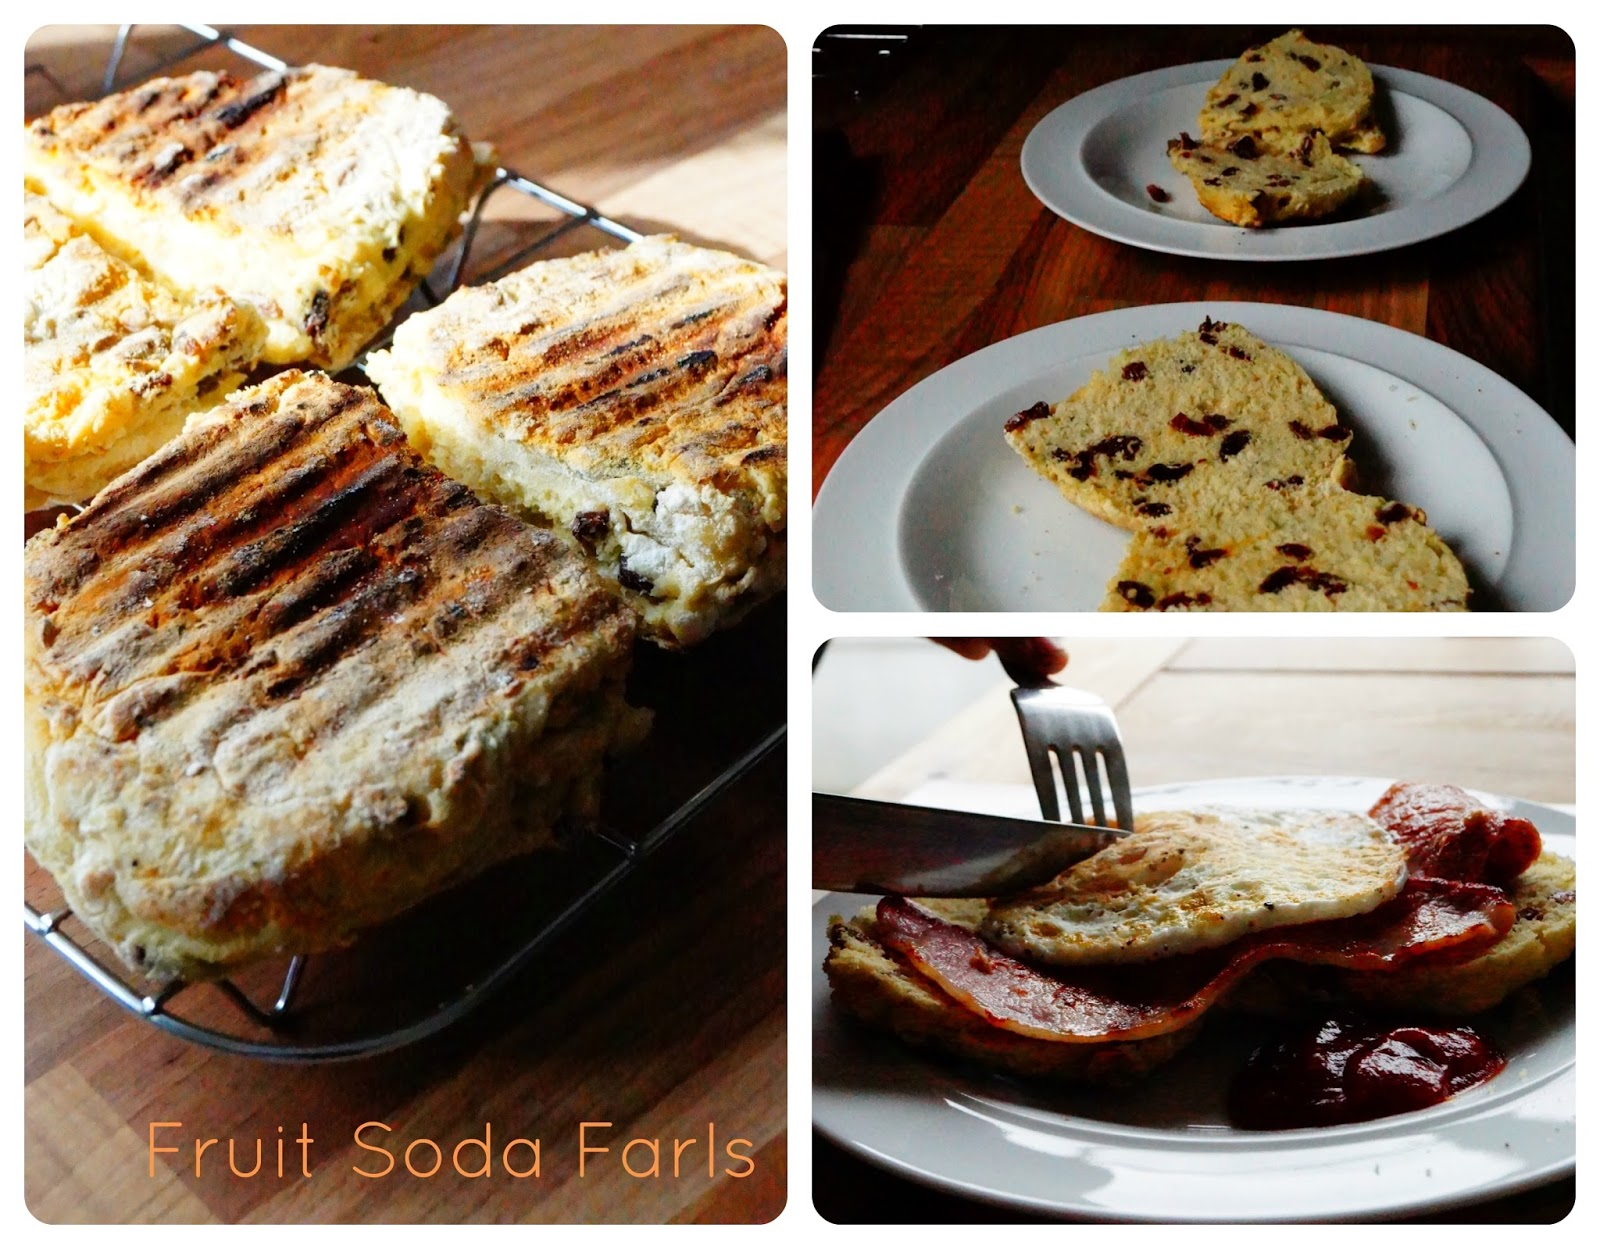 fruit soda farls - 'growourown.blogspot.com' - Allotment Blog